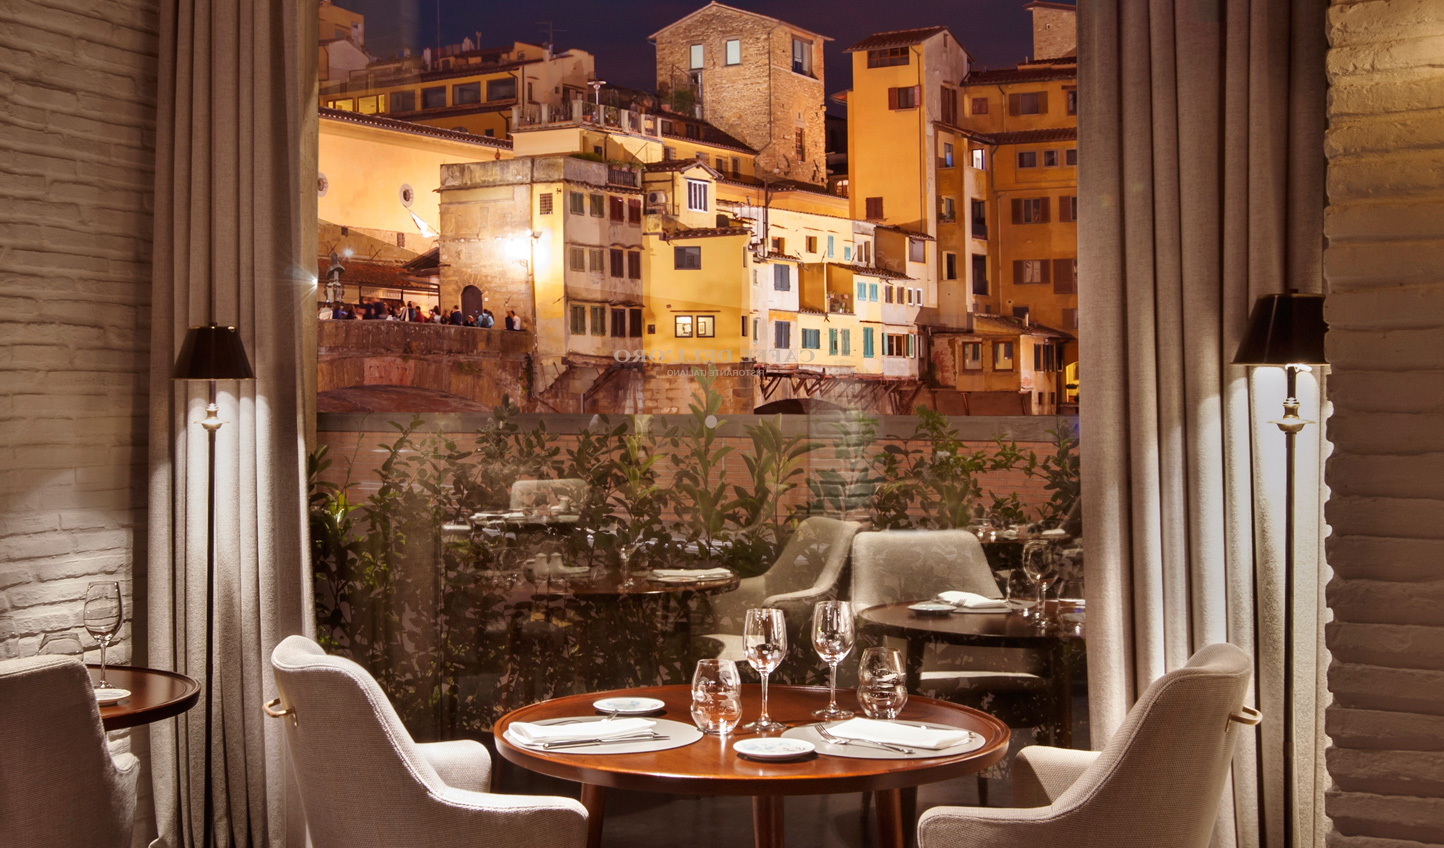 Dinner with a view at Caffe Dell Oro